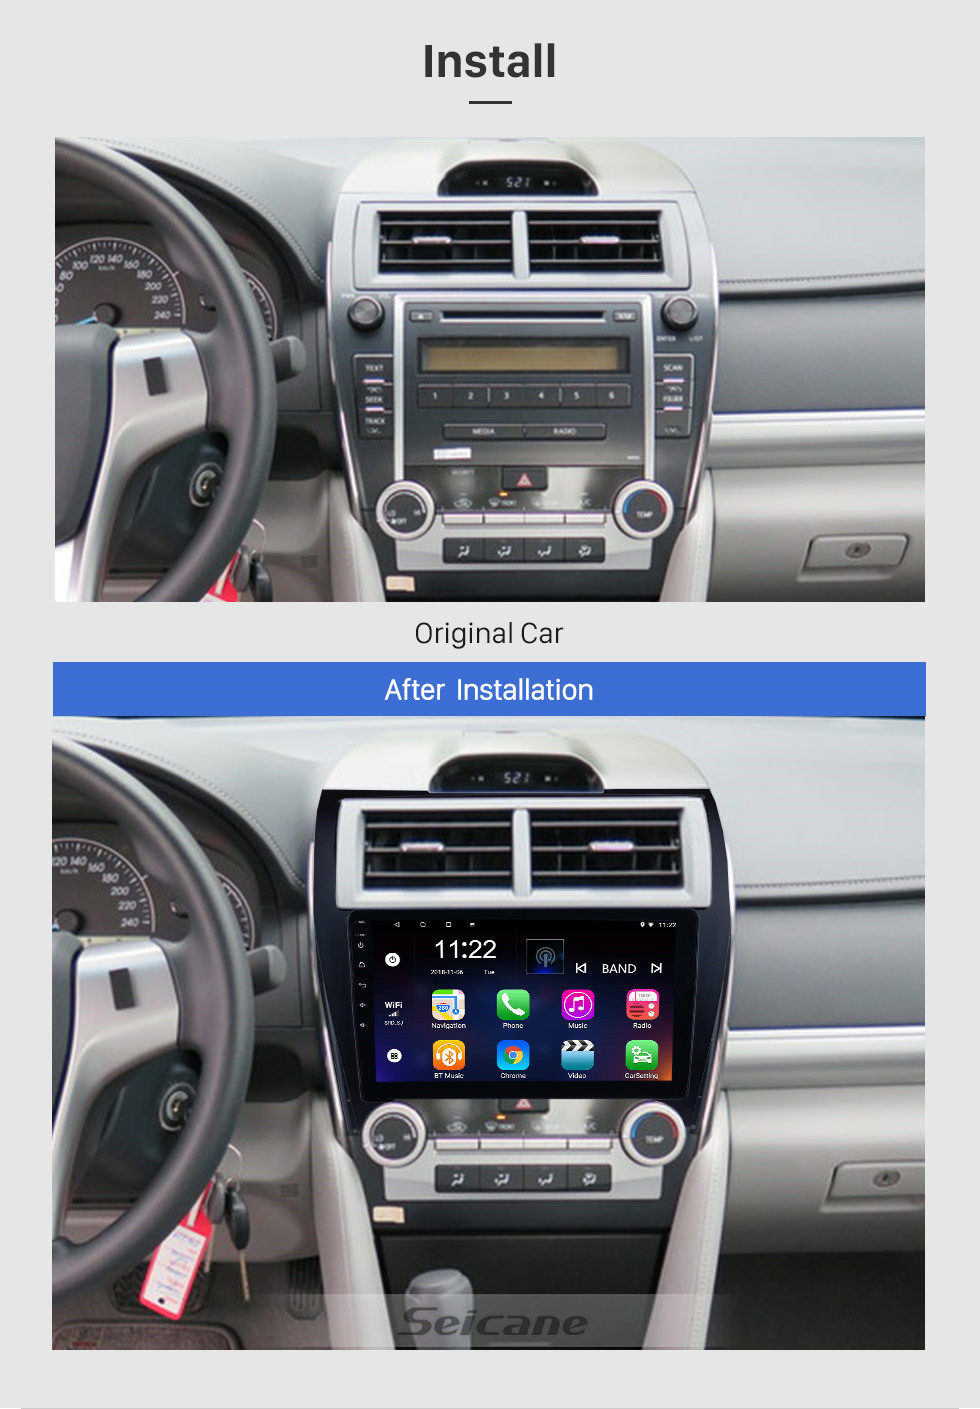 Seicane 10.1 Inch Android 9.0 HD Touchscreen For 2012 2013 2014-2017 TOYOTA CAMRY GPS Navigation System Radio with Bluetooth WIFI Support OBD2 DAB+ Backup camera Carplay